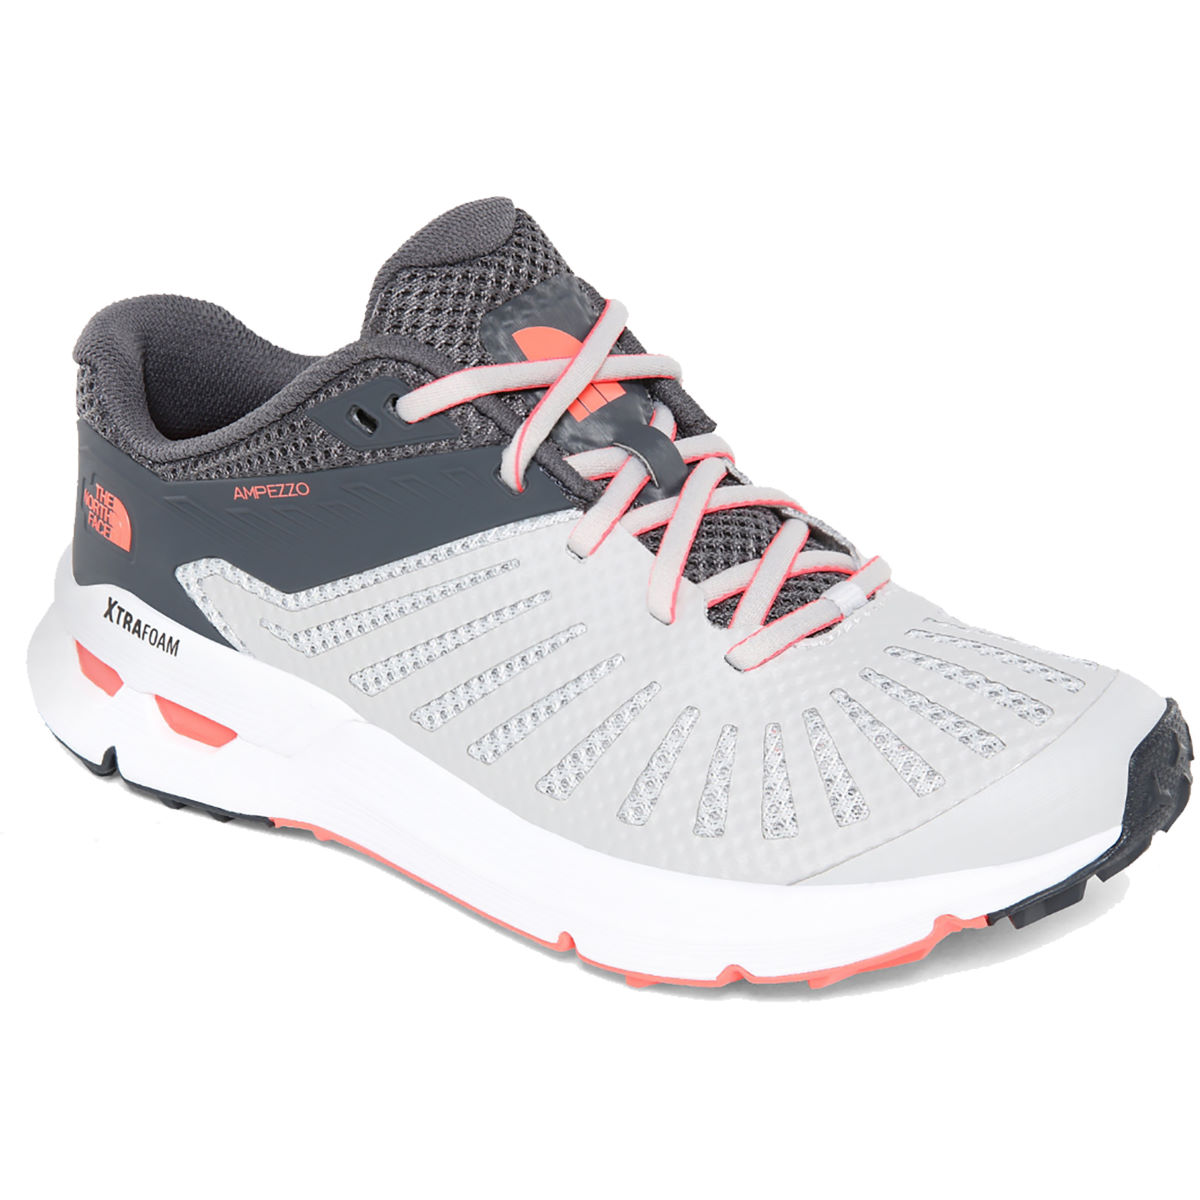 The North Face The North Face Womens Ampezzo Shoes   Trail Shoes